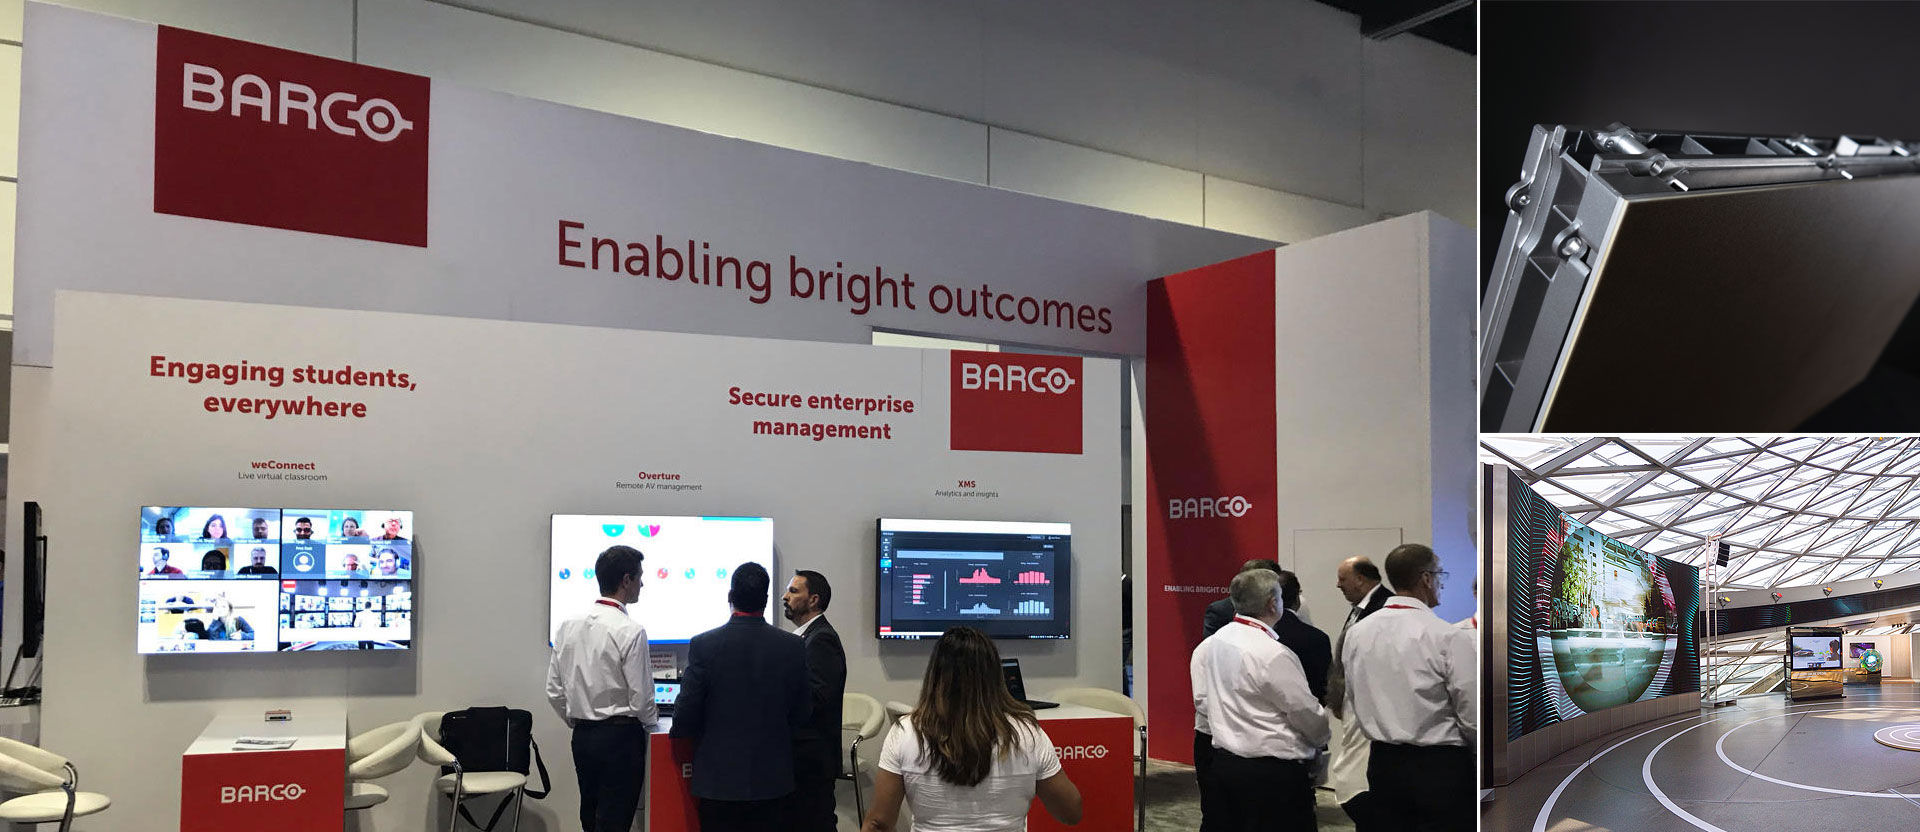 InfoComm 2019: Barco Shows weConnect Active Learning Platform With Virtual Classrooms